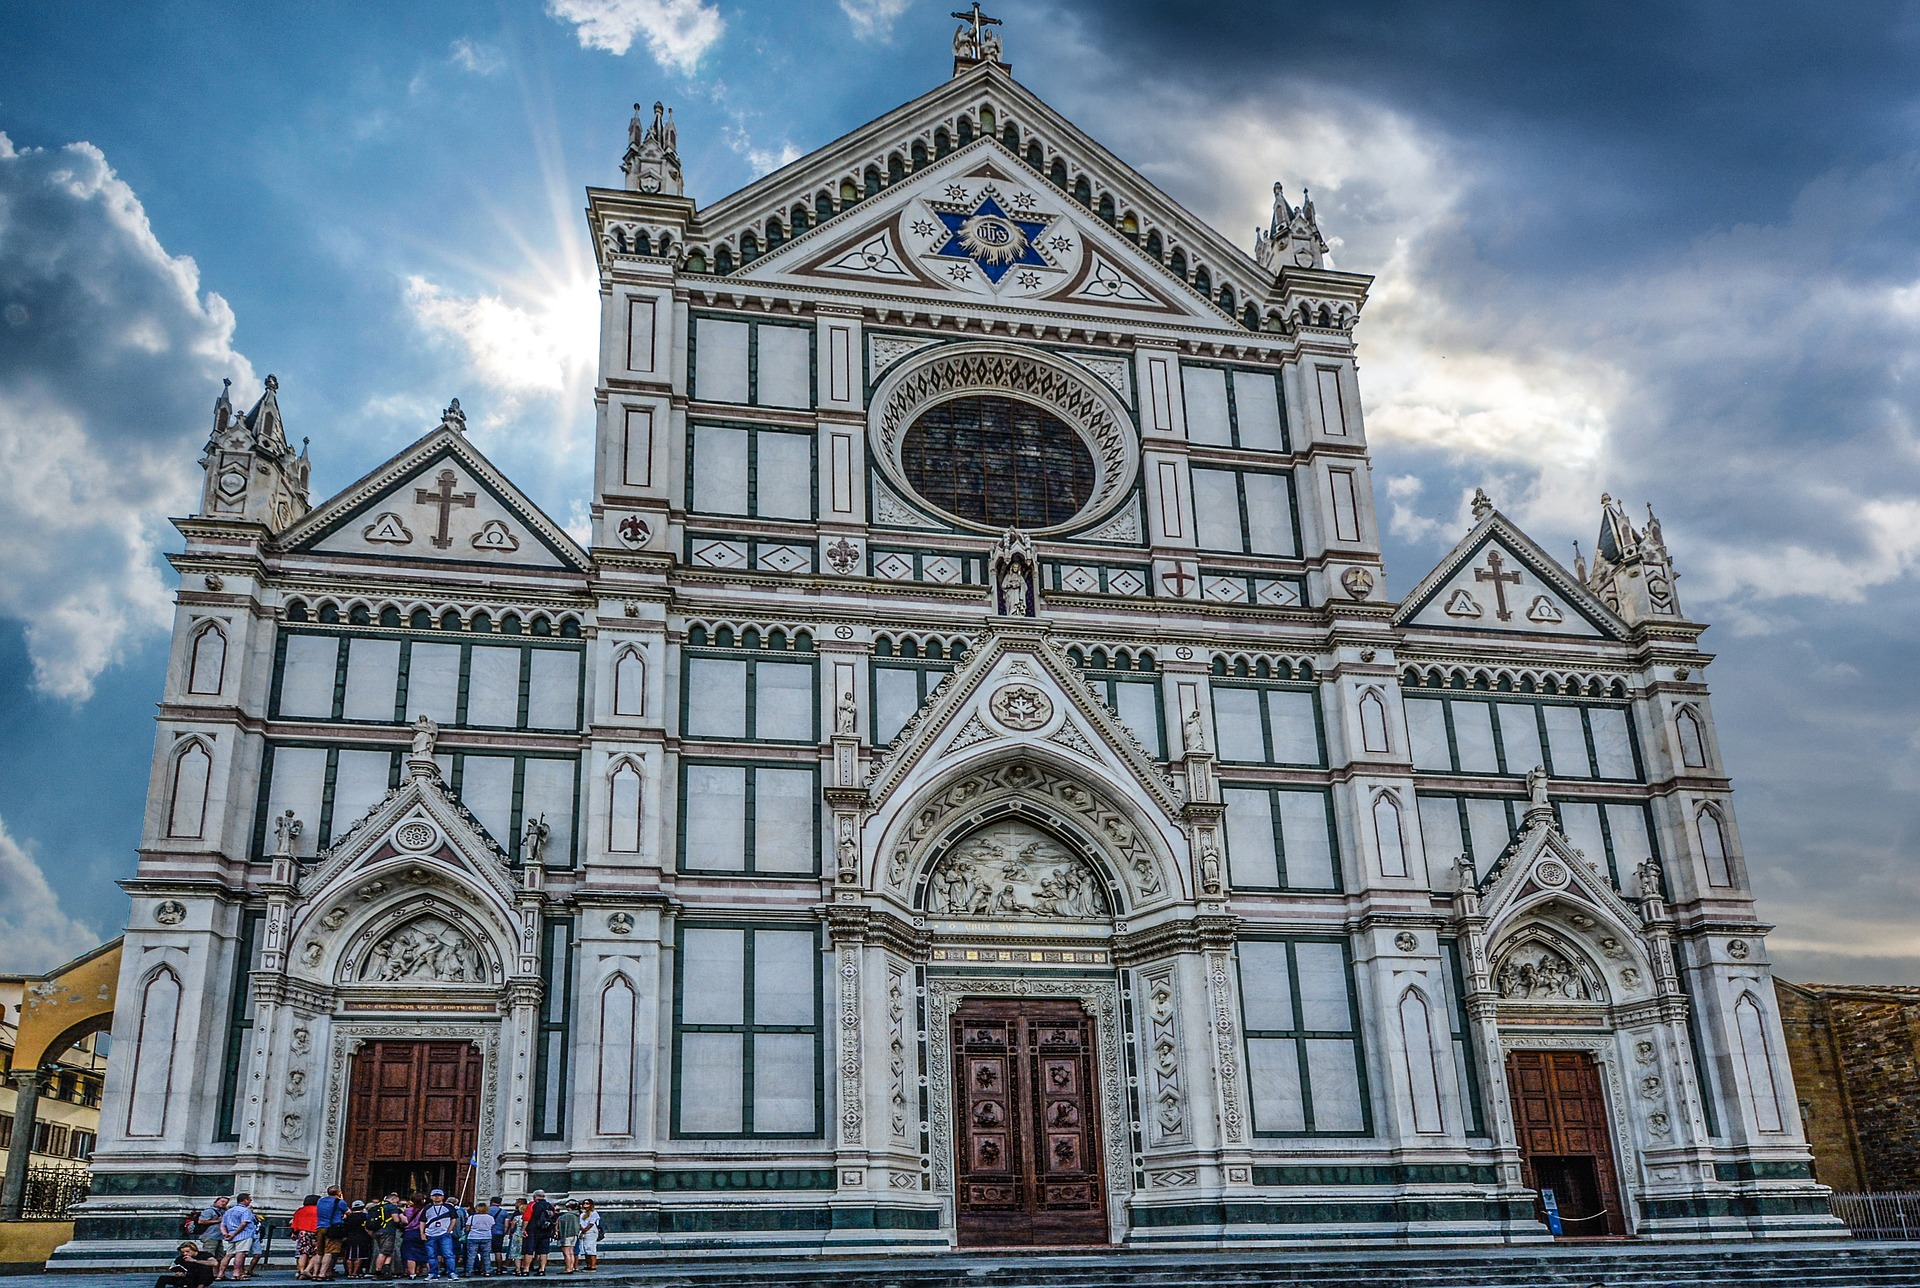 Church of Santa Croce in Florence